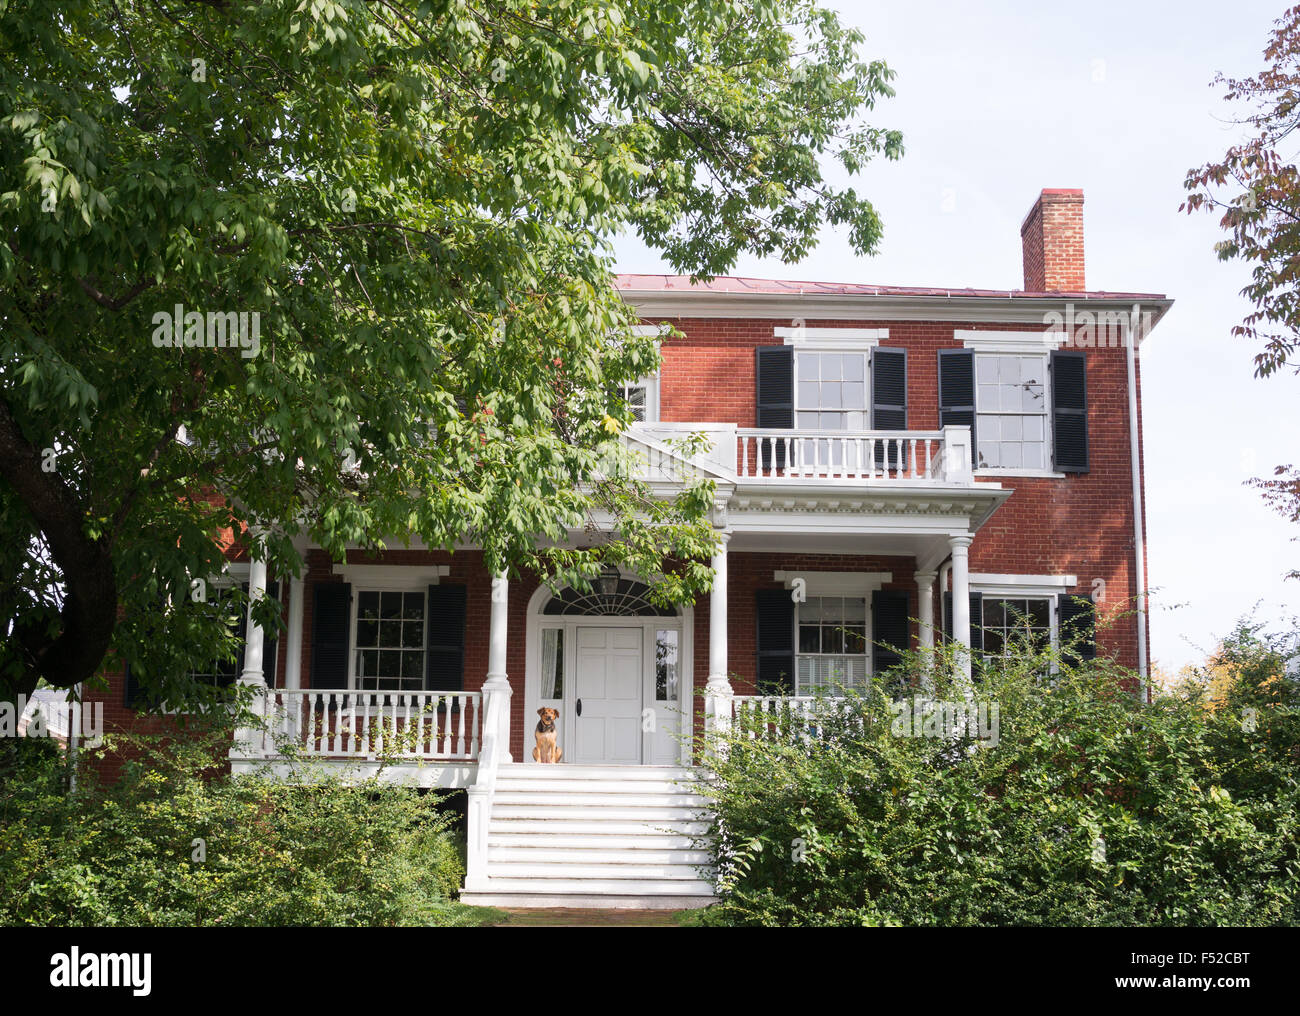 Colonial style house with dog on veranda, Charlottesville, Virginia, USA - Stock Image